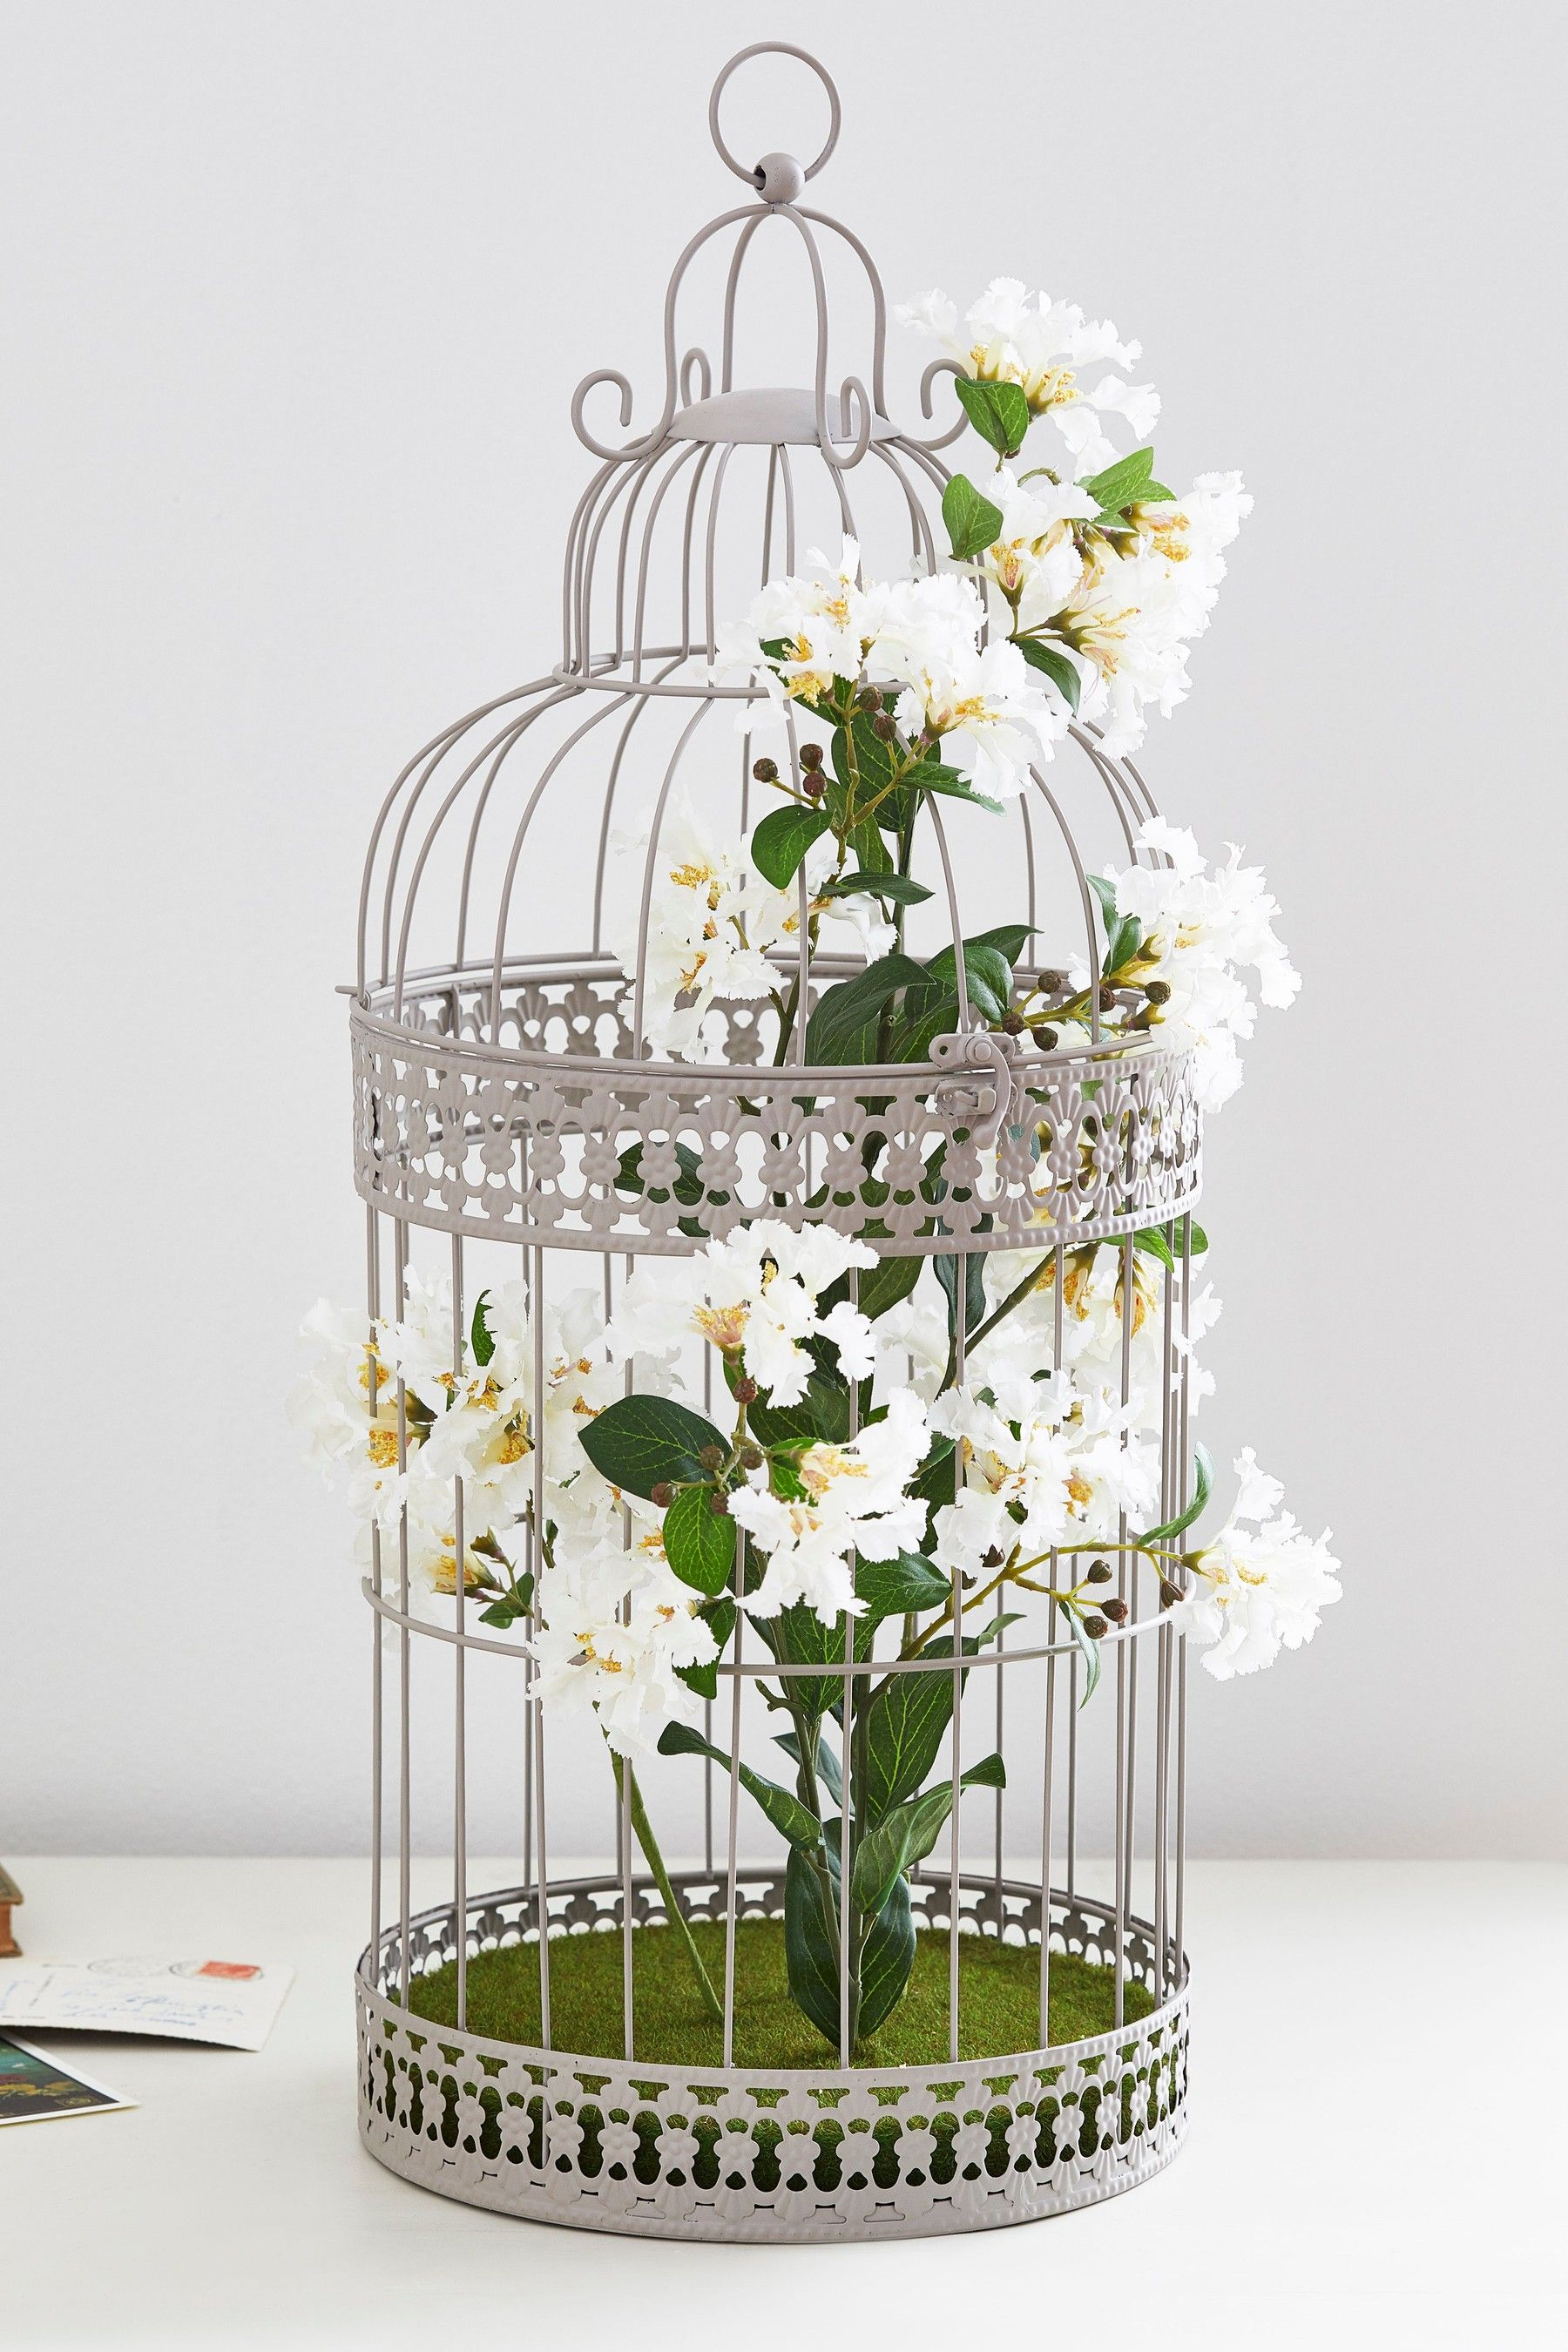 small decorative metal basket birds and flowers china.htm next large floral bird cage grey bird cage  floral  birds  next large floral bird cage grey